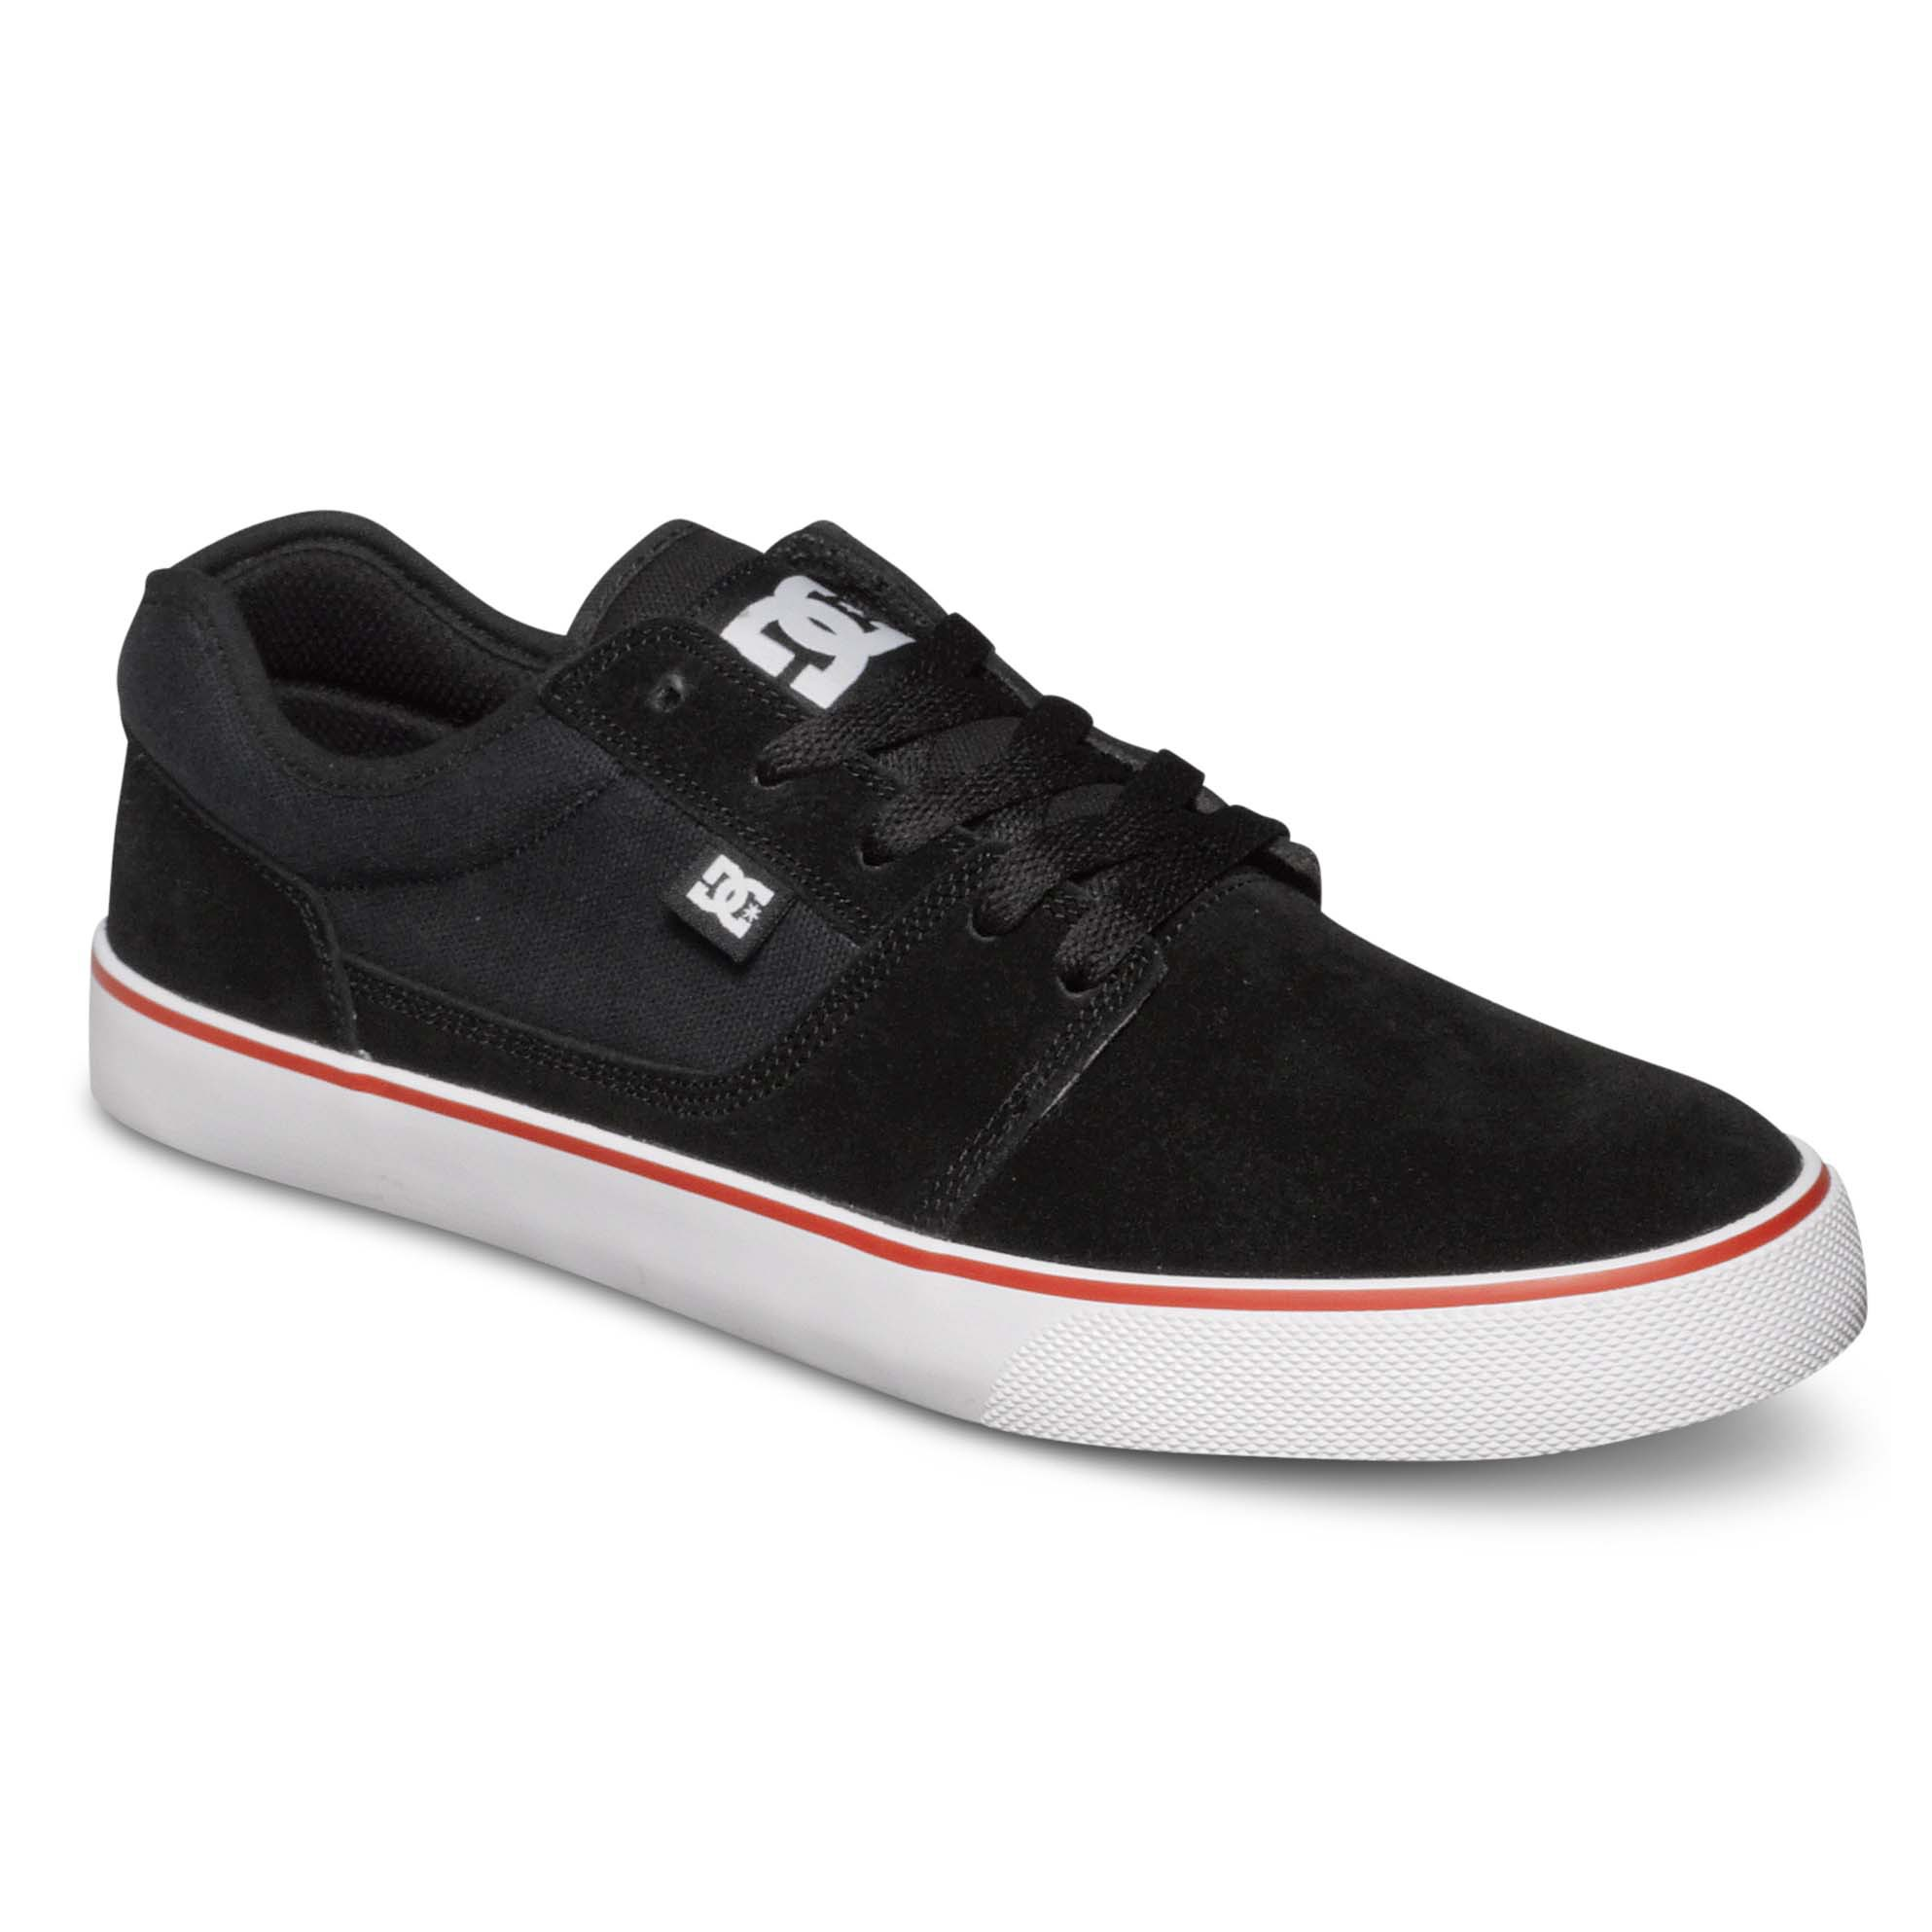 Tenisky DC Tonik B black/grey/red